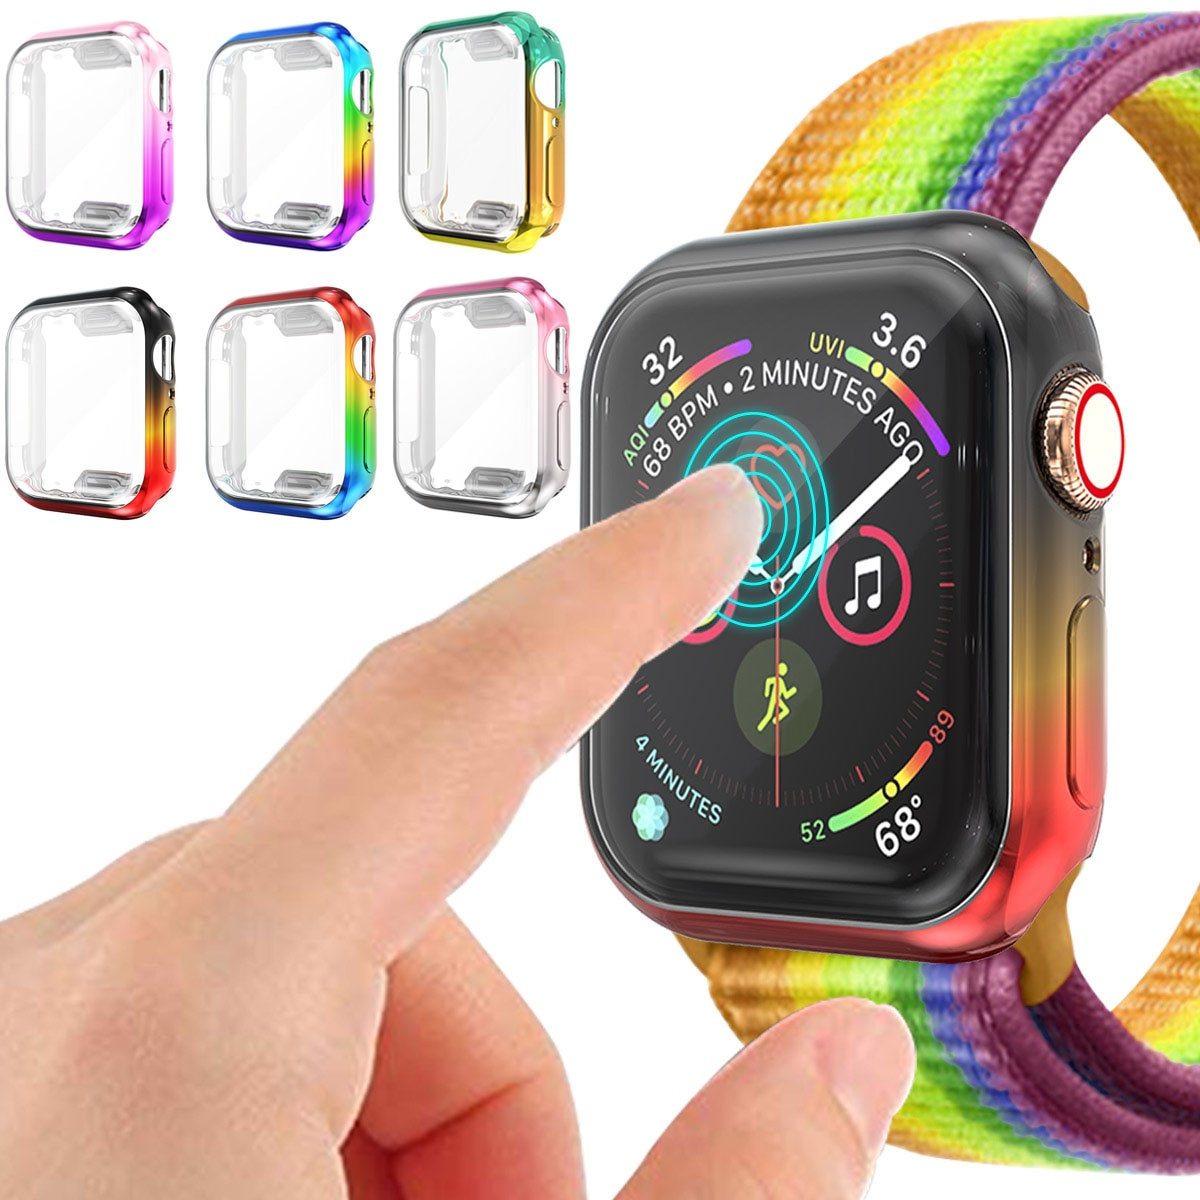 Colorful Watch Cover Screen Protector Case for Apple Watch 5 4 3 2 1 Full Protector Case For iWatch 42MM 38MM 44MM 40MM Shell【Exquisite strap】